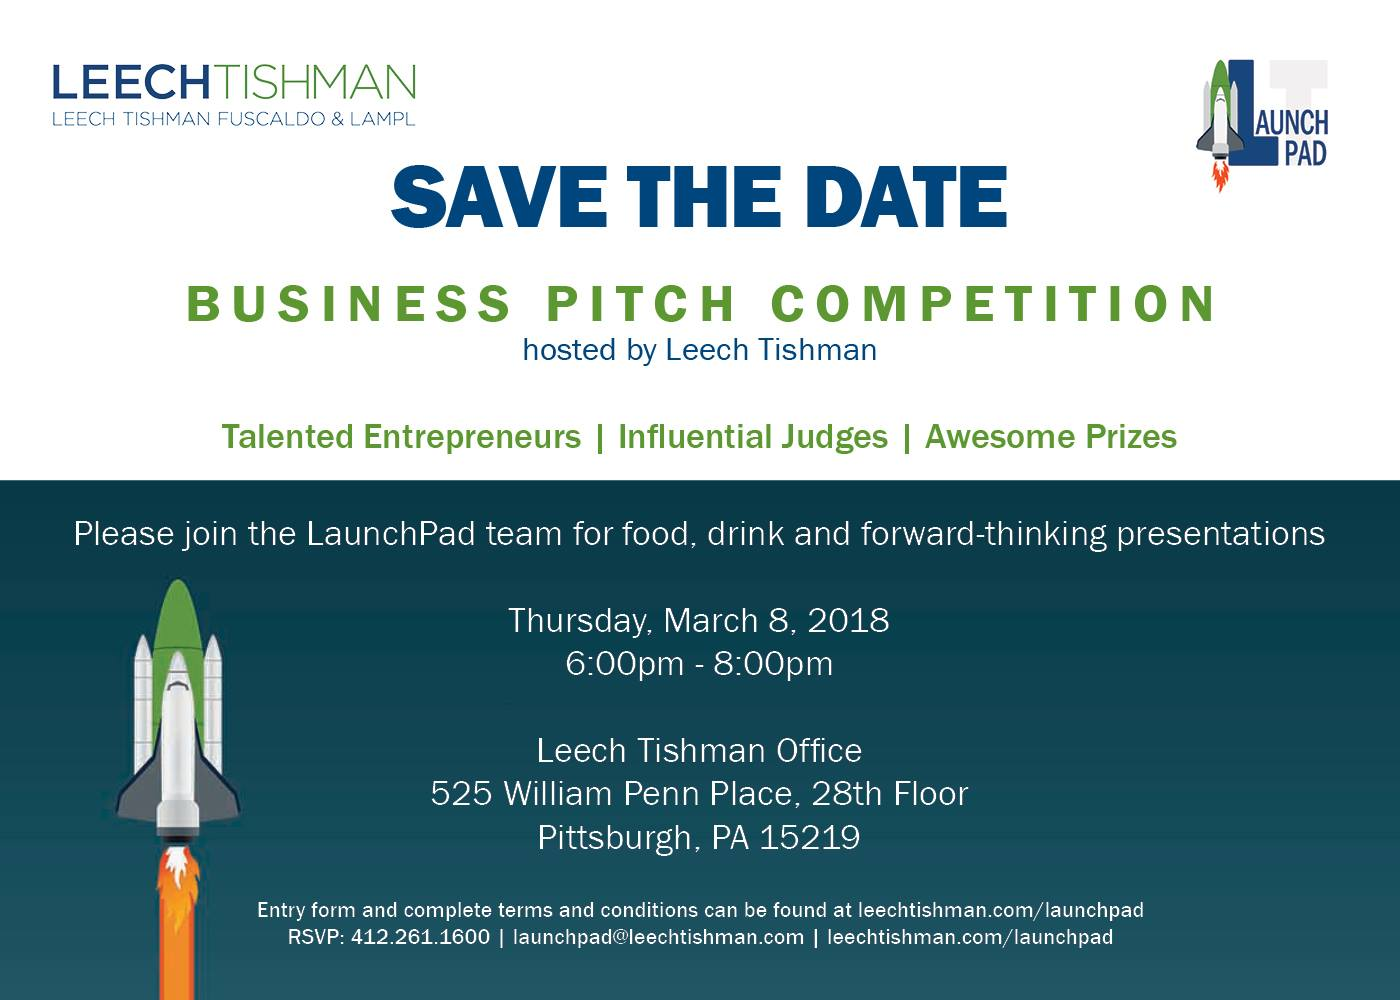 https://www.leechtishman.com/launchpad/launchpad-business-pitch-competition/